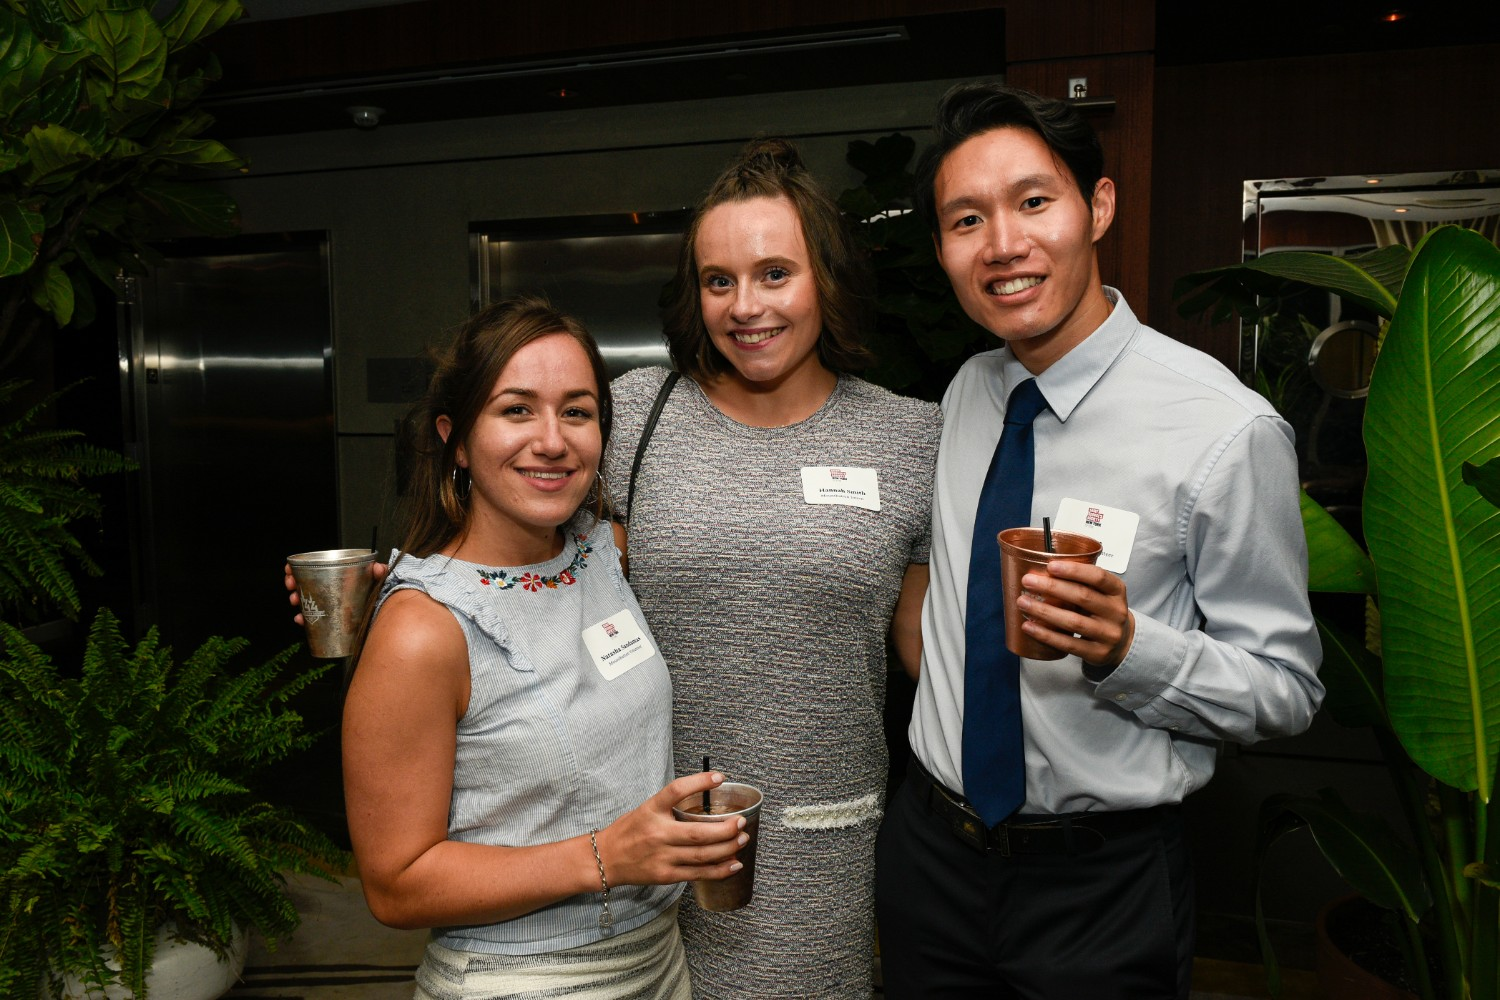 Summer-Cocktails-2018-St-Georges-Society-of-NYC (79).jpg